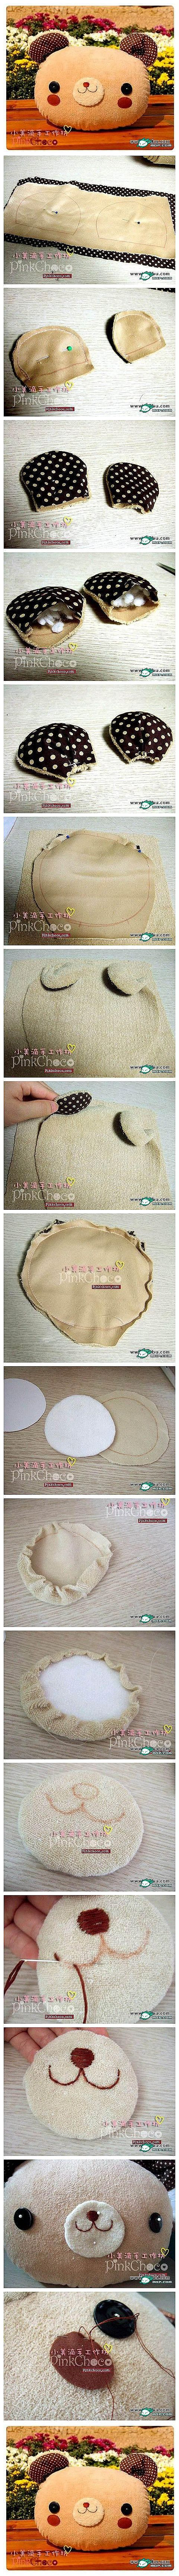 Pintrest @Lvngdedgrl- How to make a Teddy Bear Pillow - Wouldn't be very…